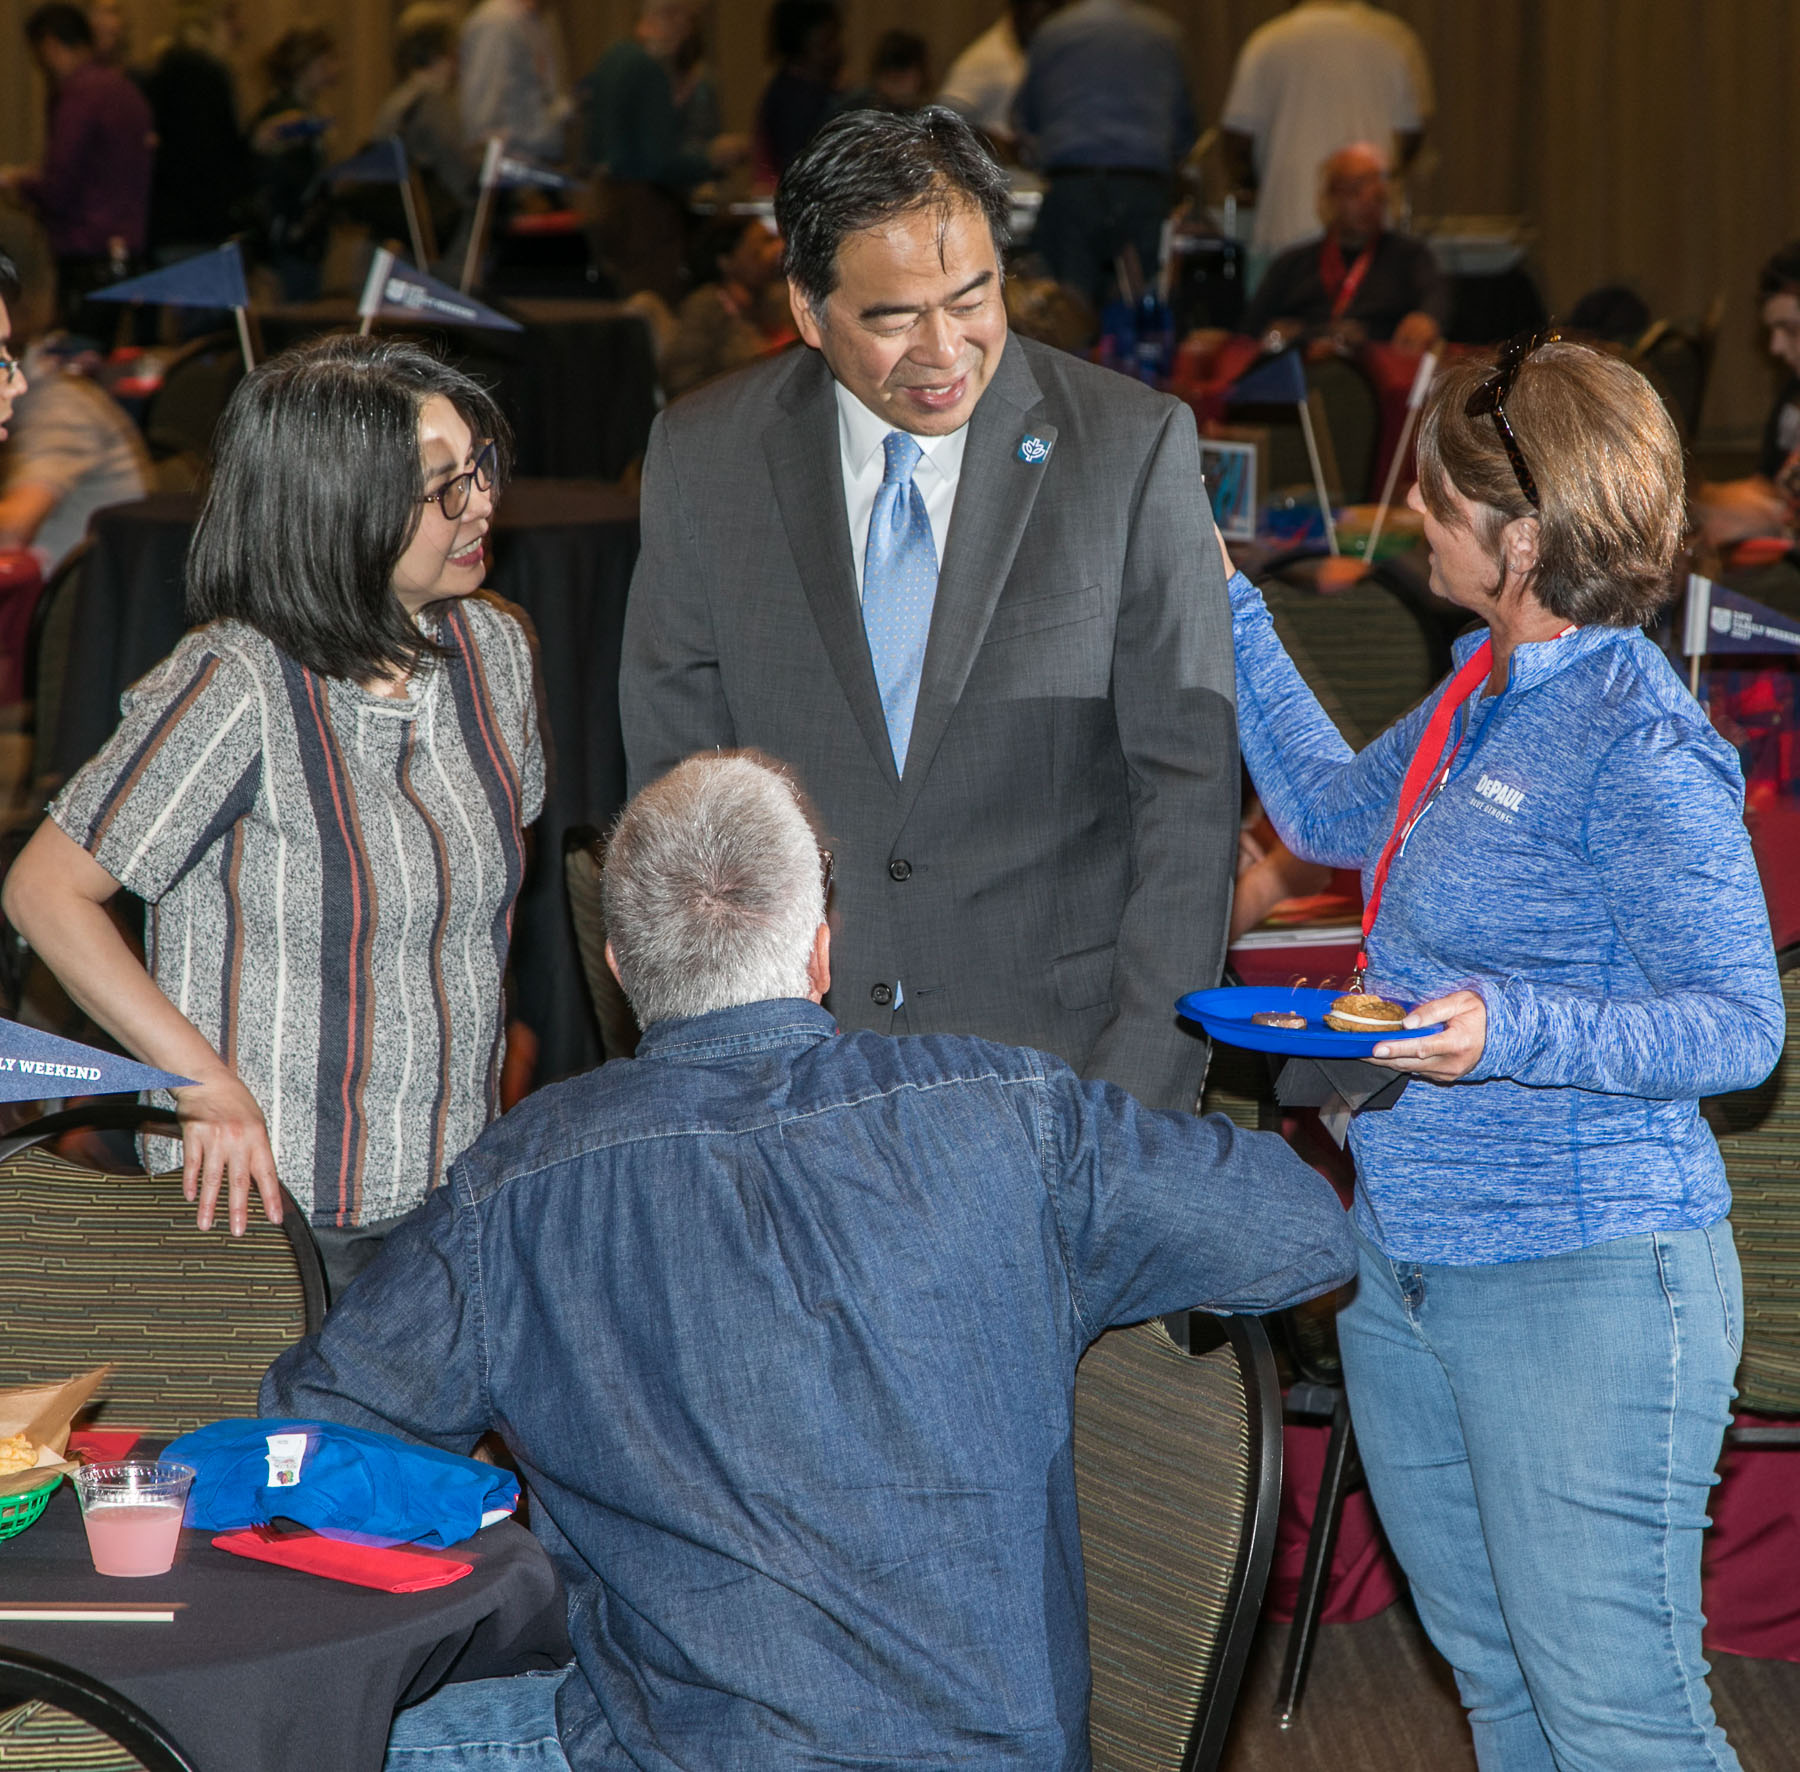 Josephine Esteban, left, and DePaul University President A. Gabriel Esteban, Ph.D., center, greet guests as students and family members gather for a buffet dinner and student performances at the Family Weekend Kickoff celebration. (DePaul University/Jamie Moncrief)